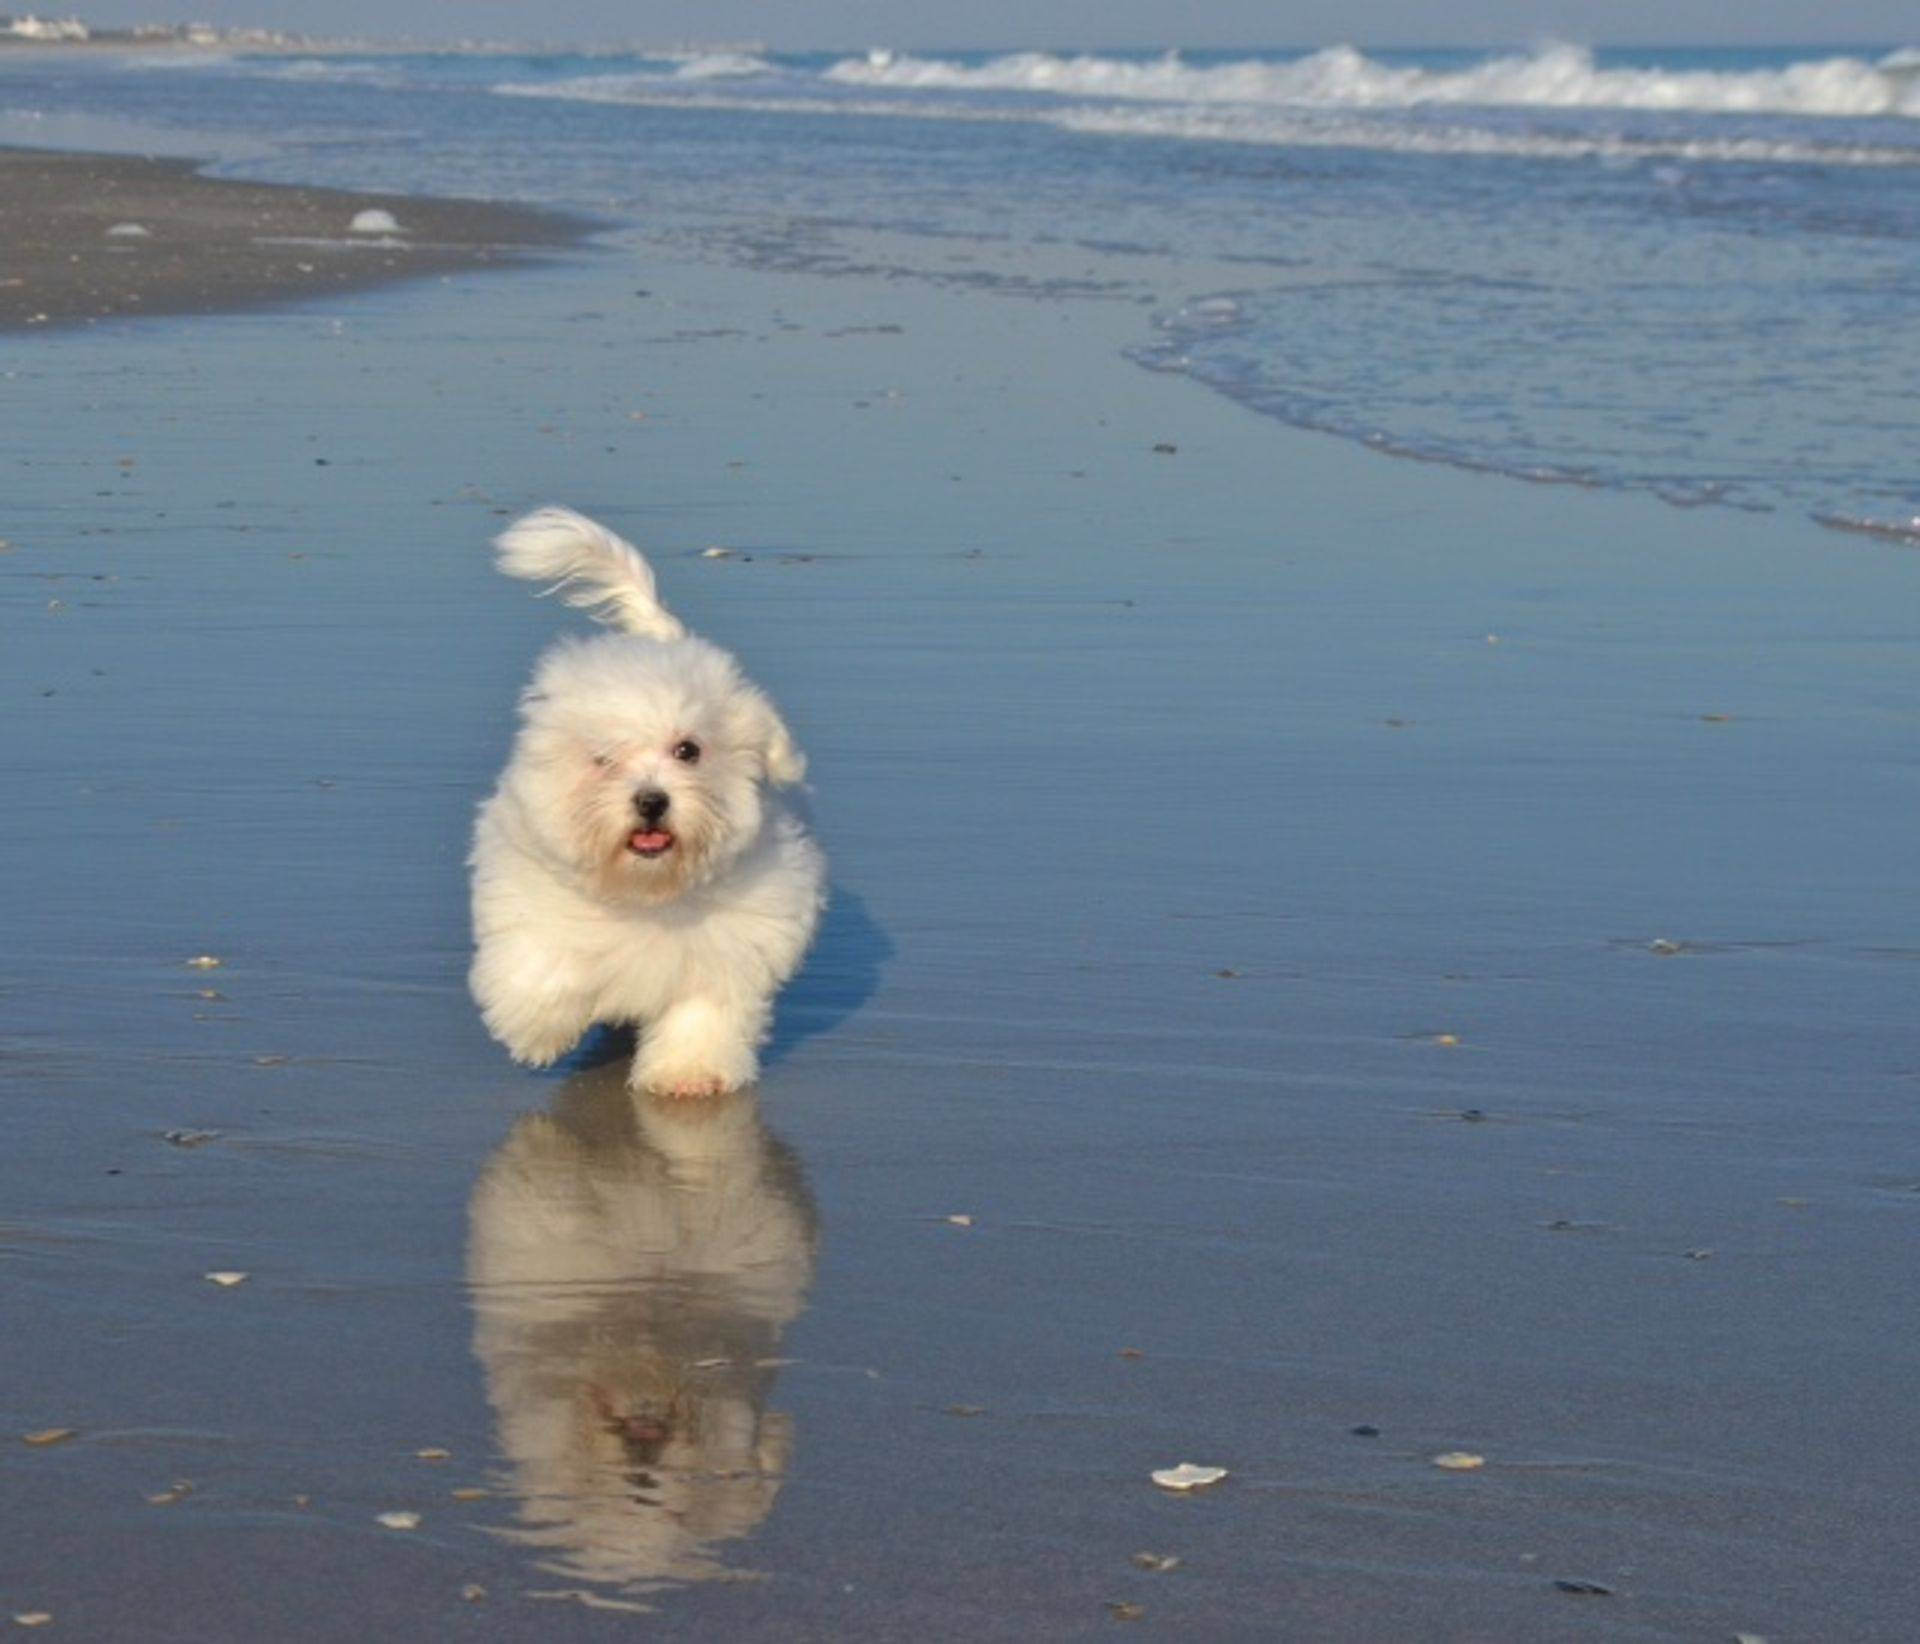 Coton de tulear puppy playing on the beach